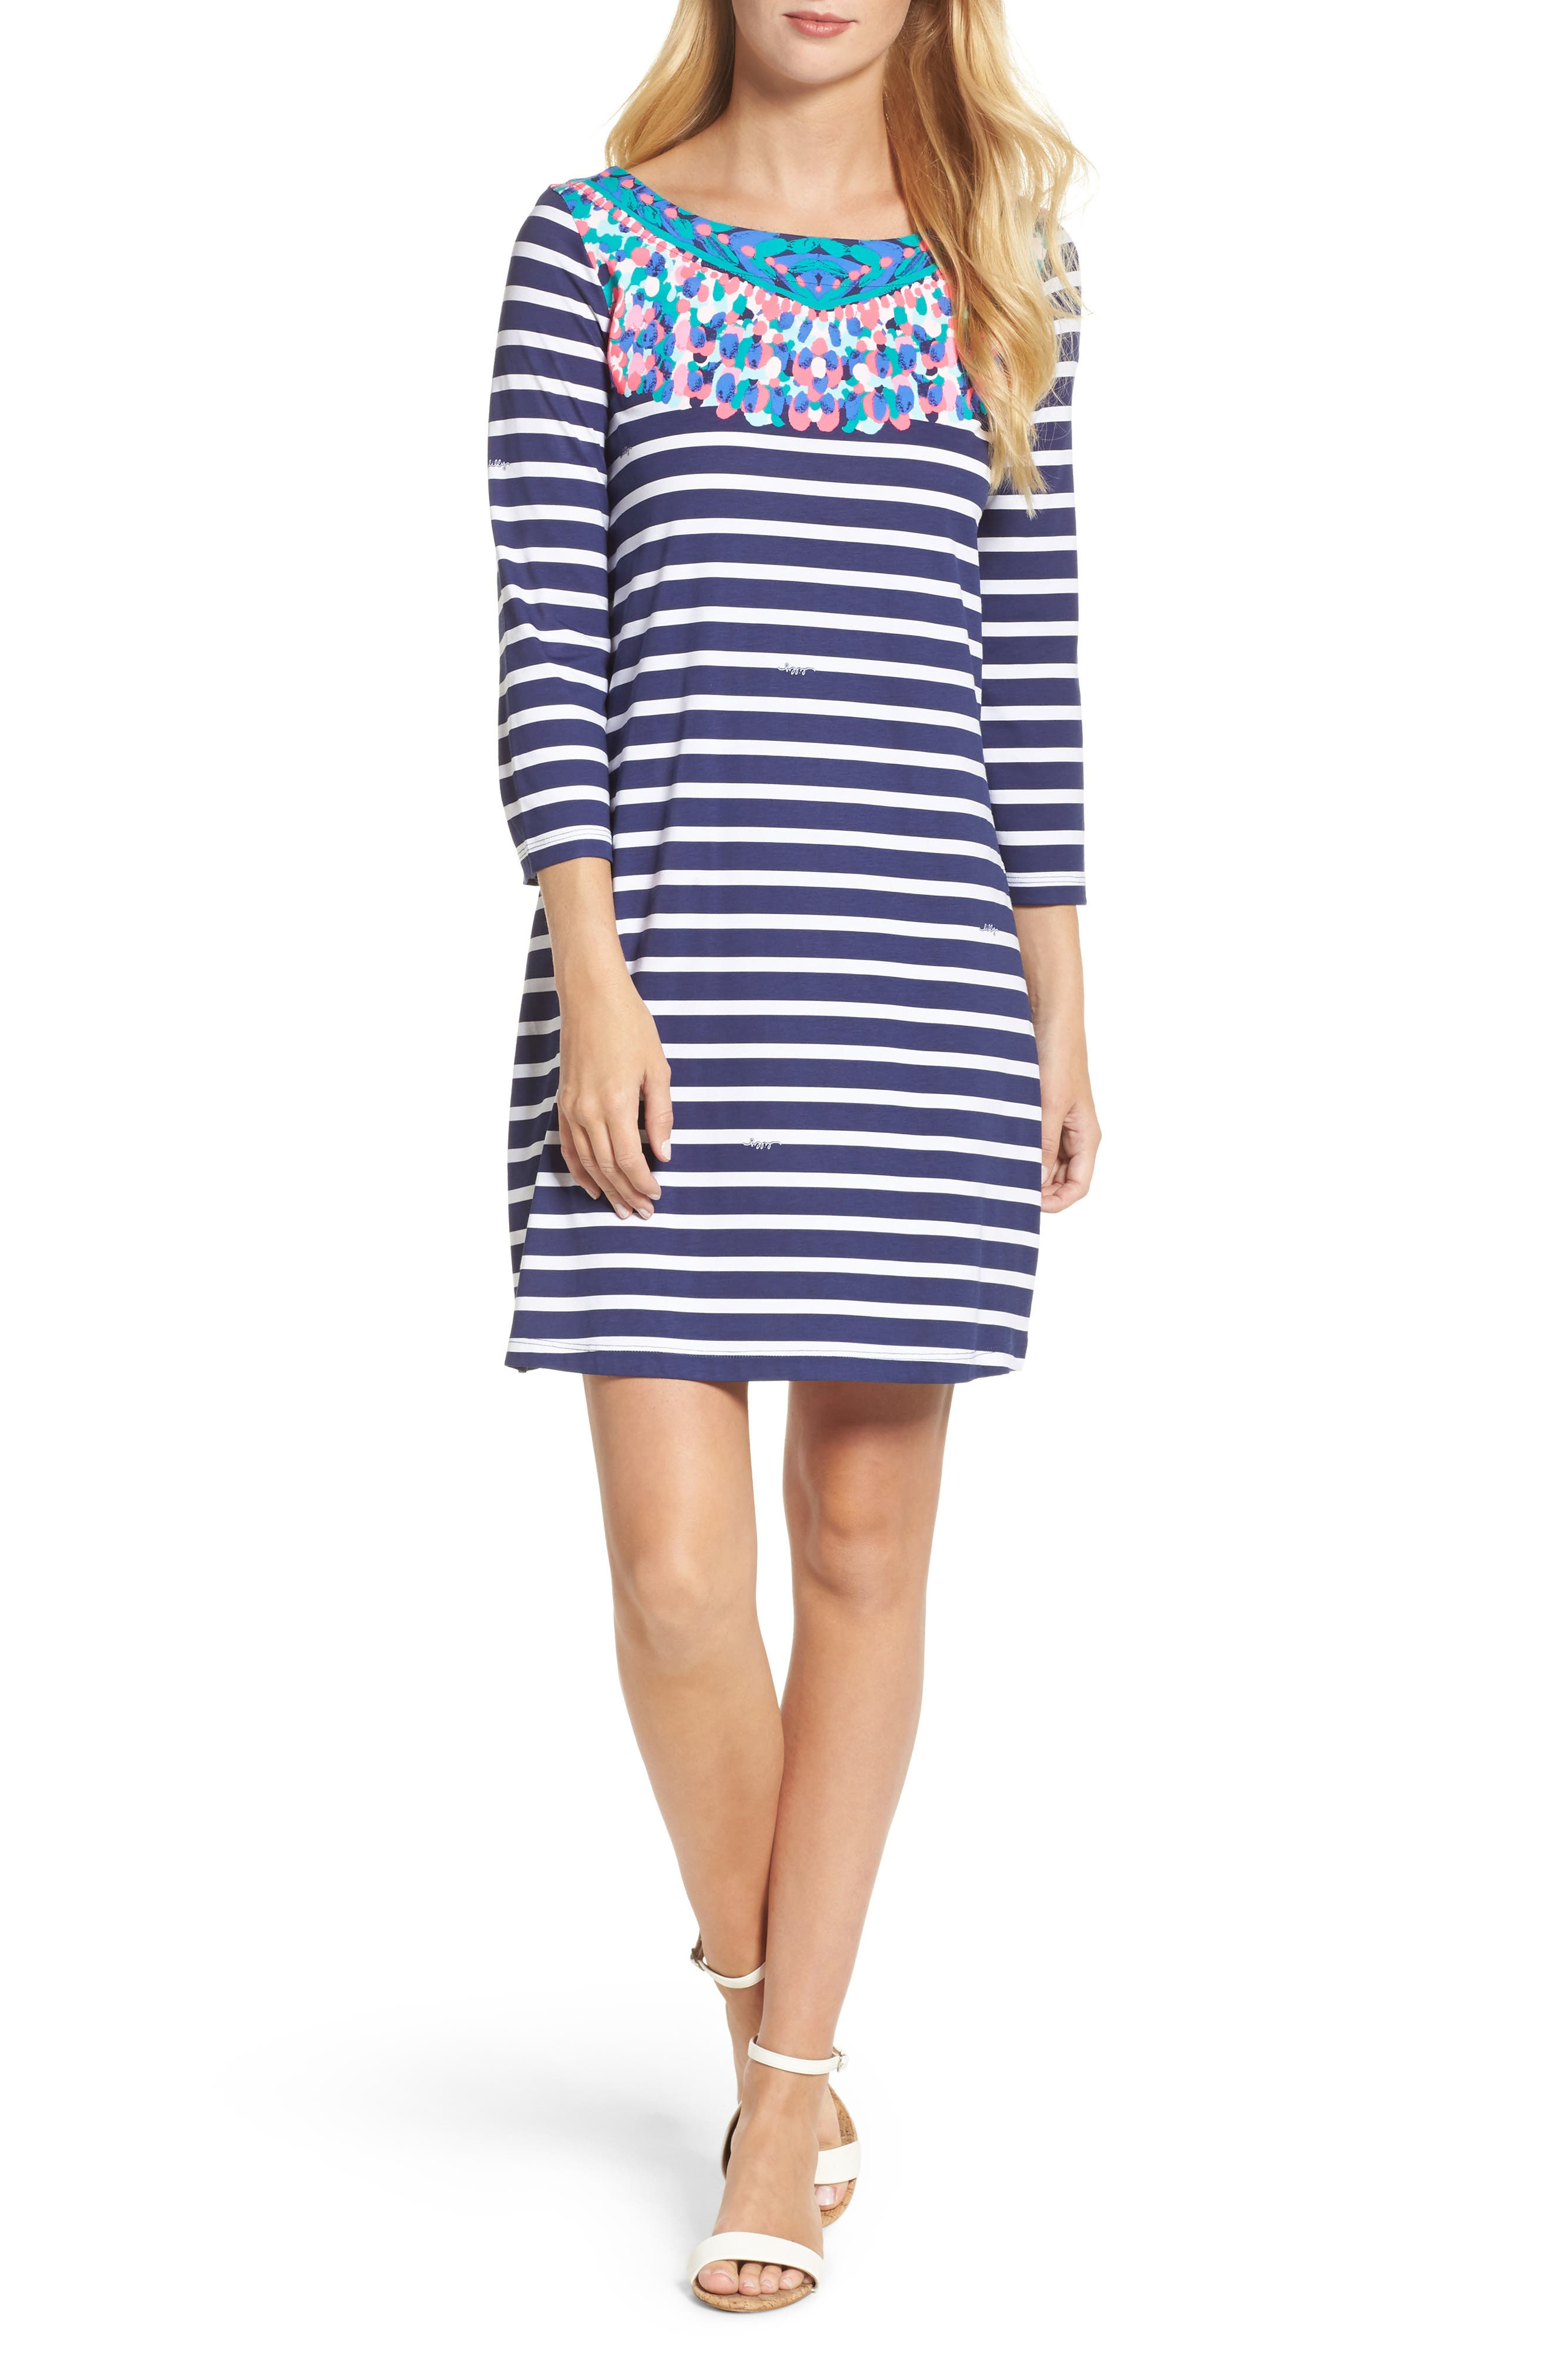 Bay Shift Dress,                         Main,                         color, Bright Navy Island Medallion